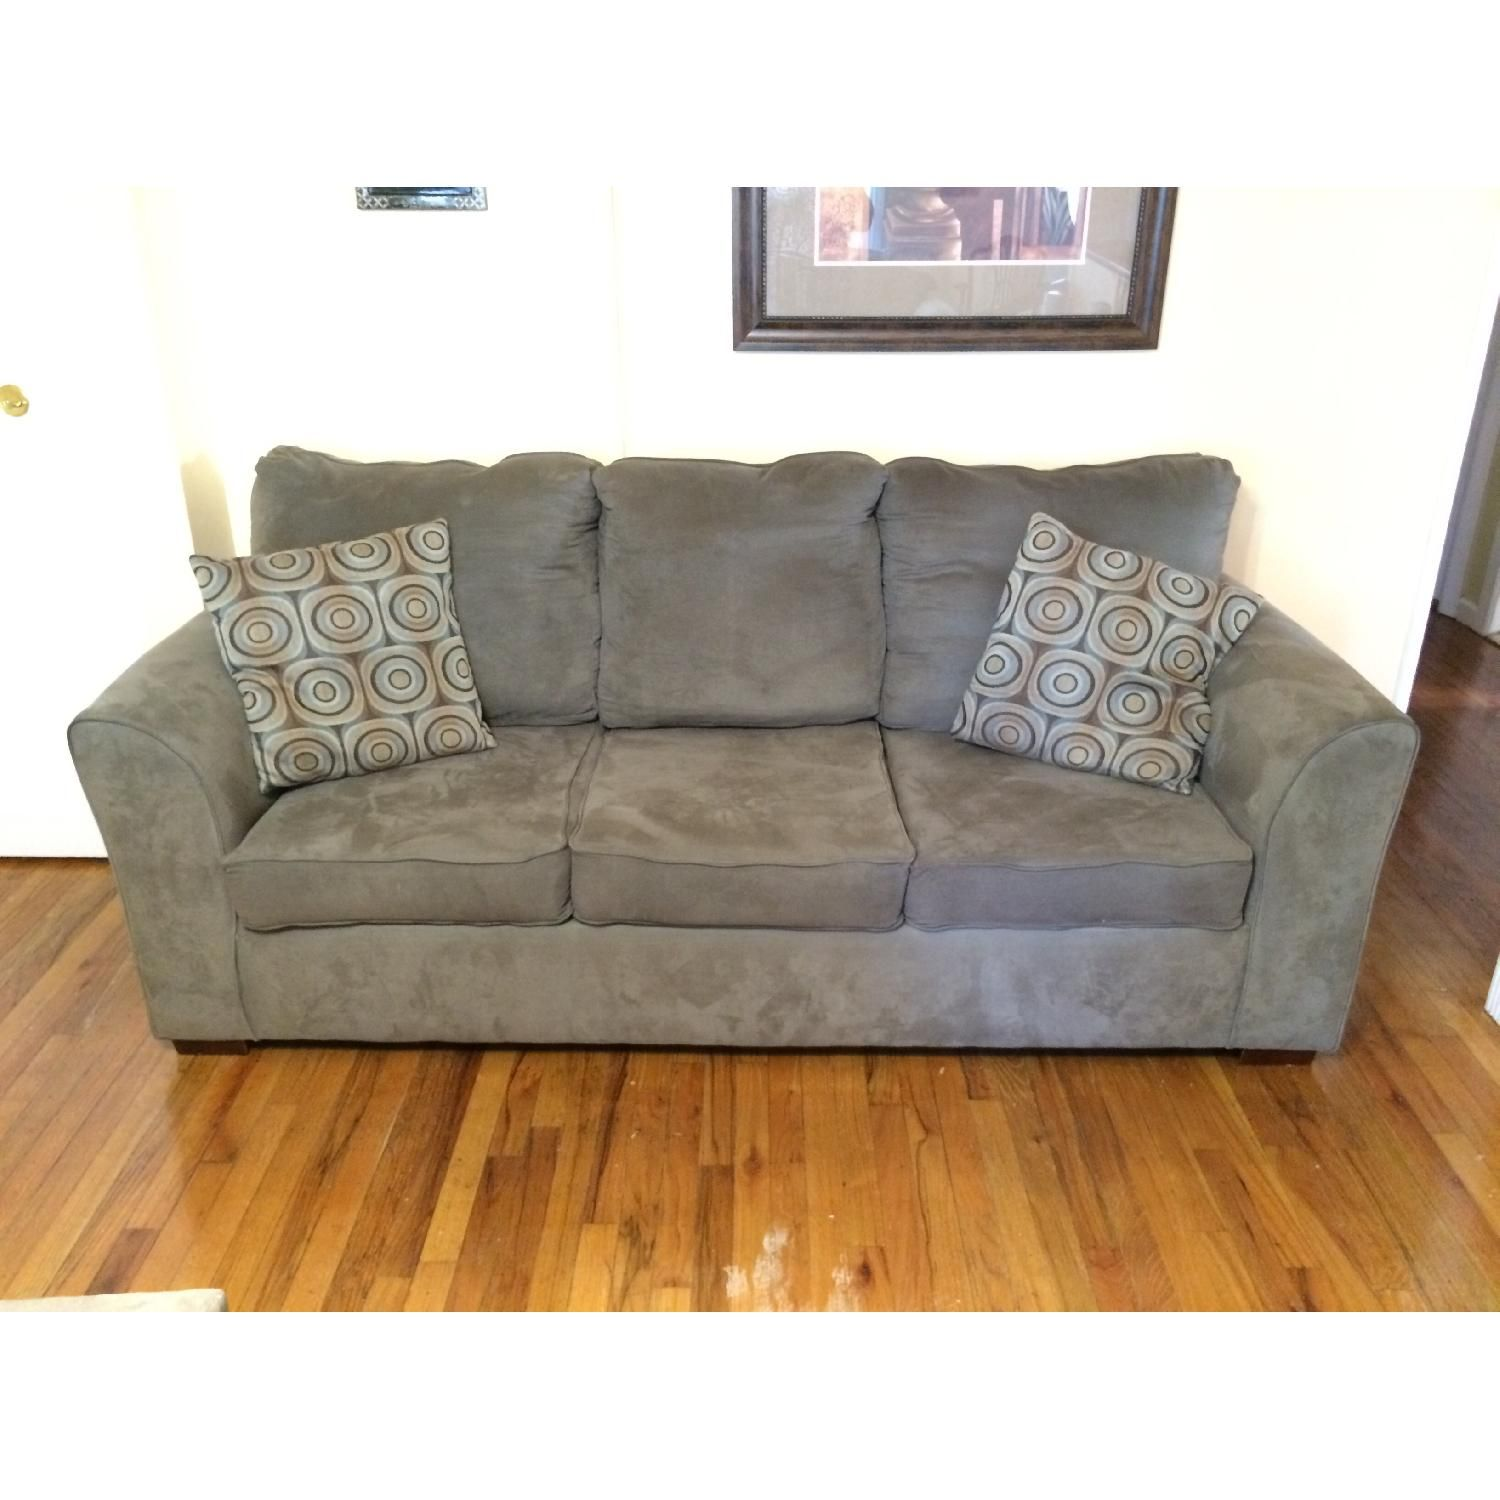 Bob's Green/Grey Sofa + Loveseat + Chaise Lounge AptDeco